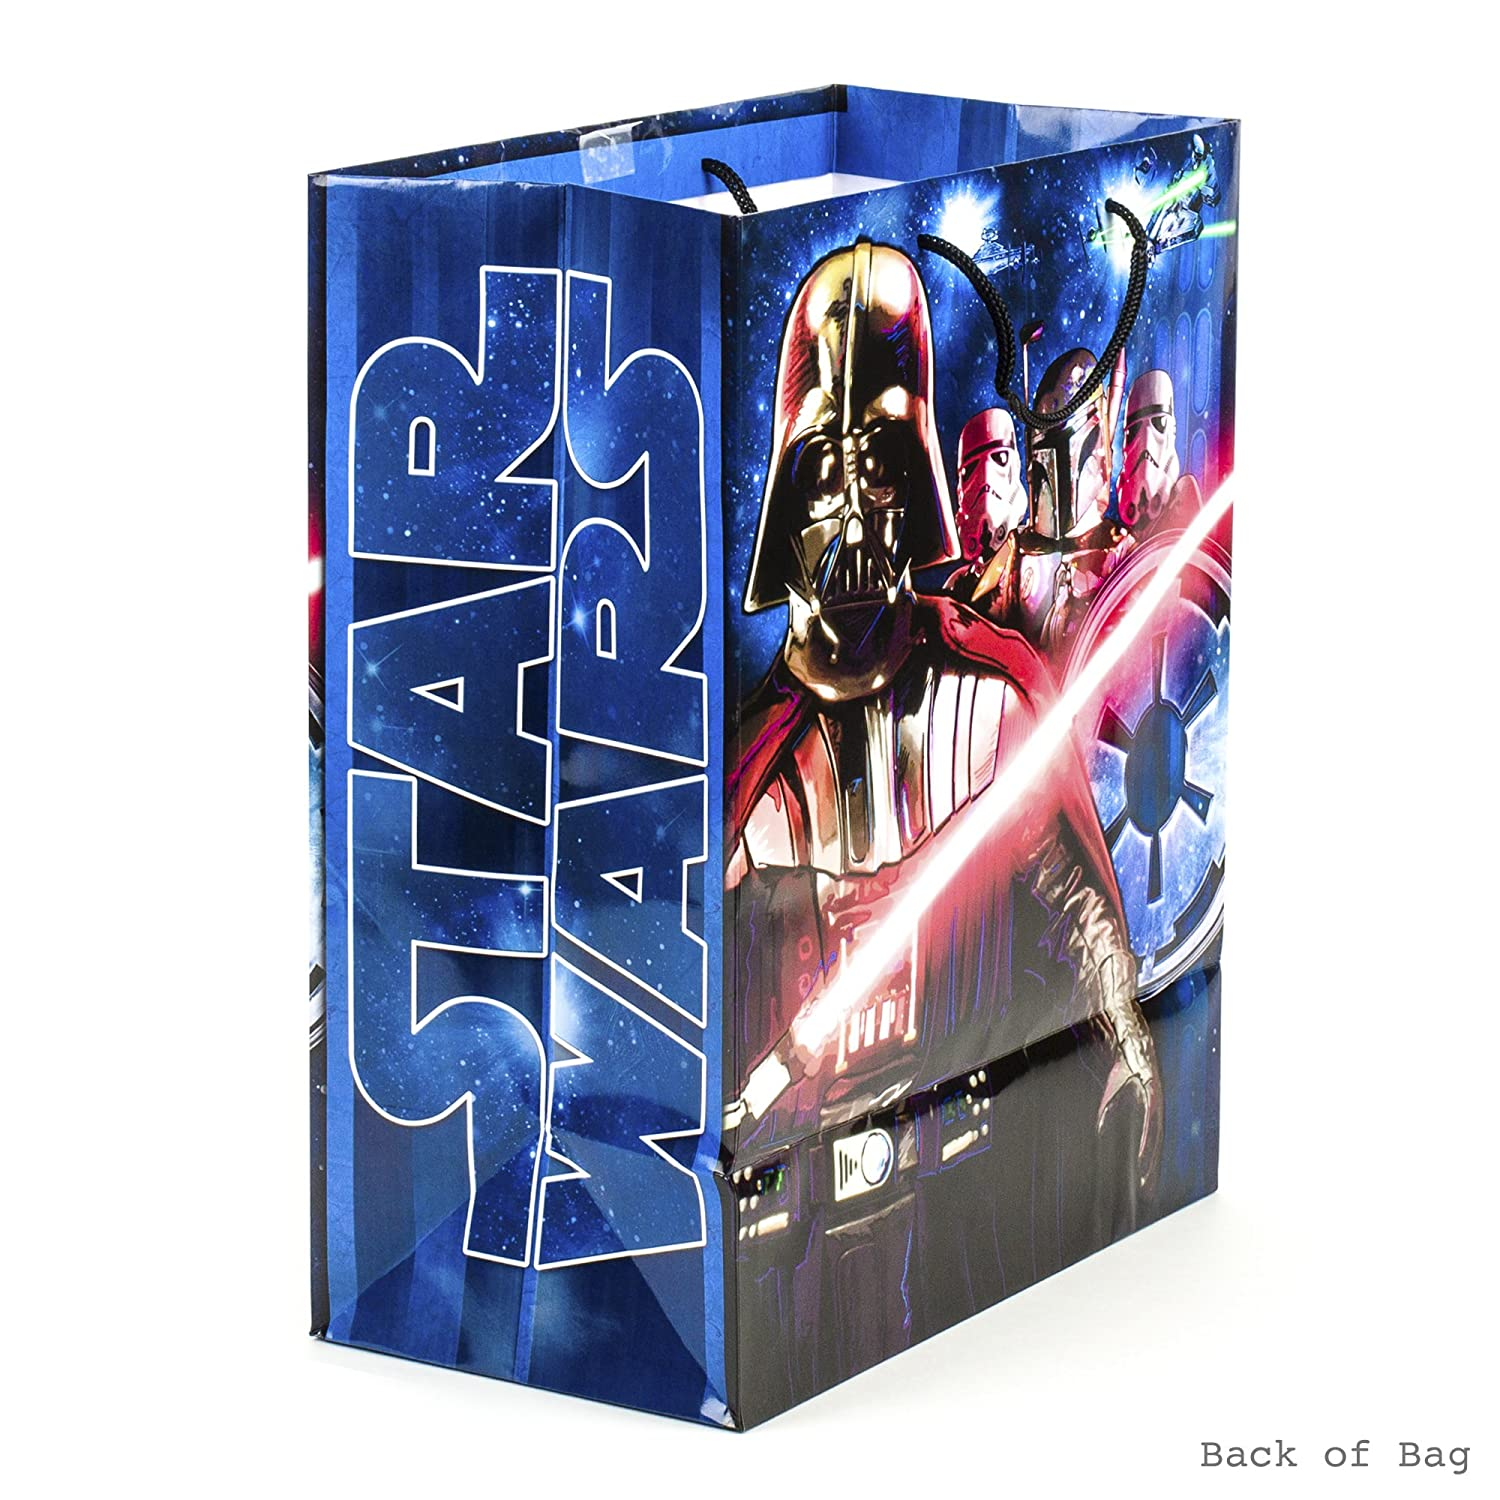 Star Wars Classic Hallmark Large Gift Bag with Birthday Card and Tissue Paper